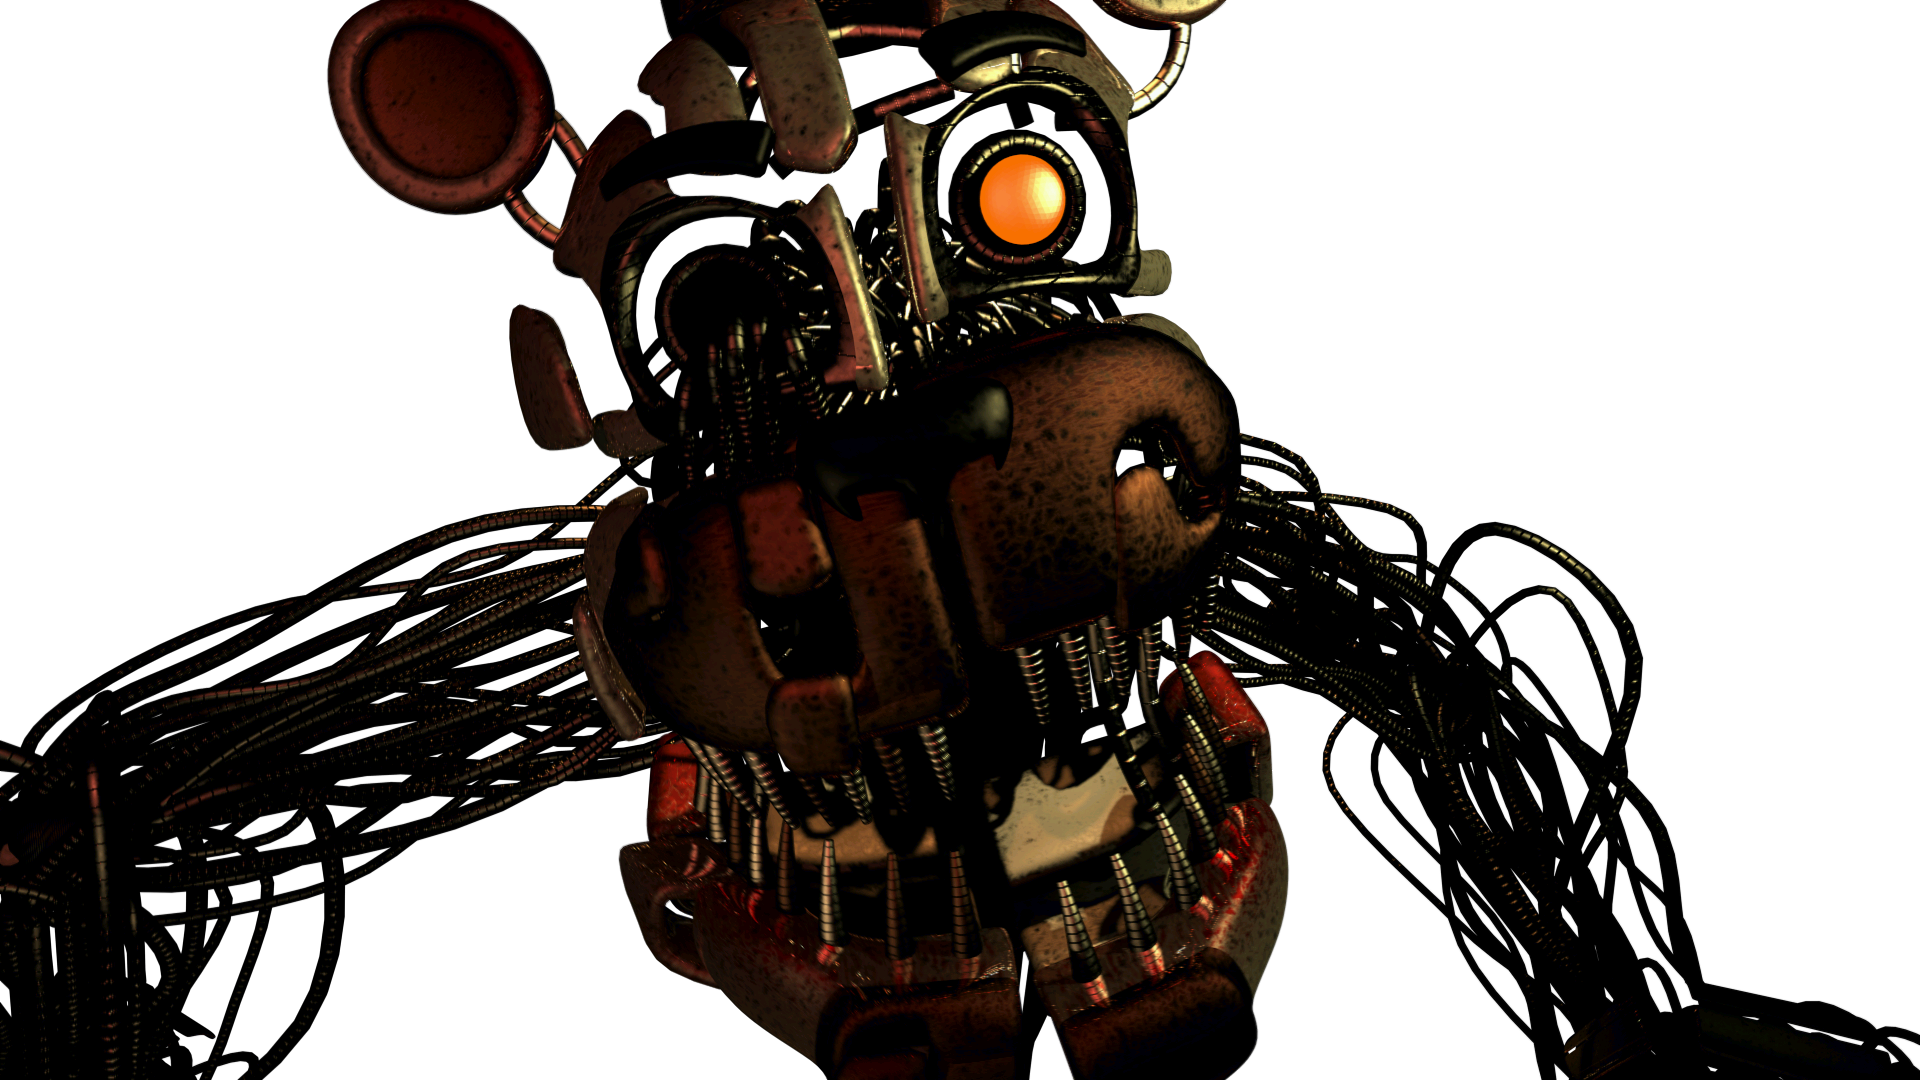 Fnaf 4 freddy png. Image molten sister location